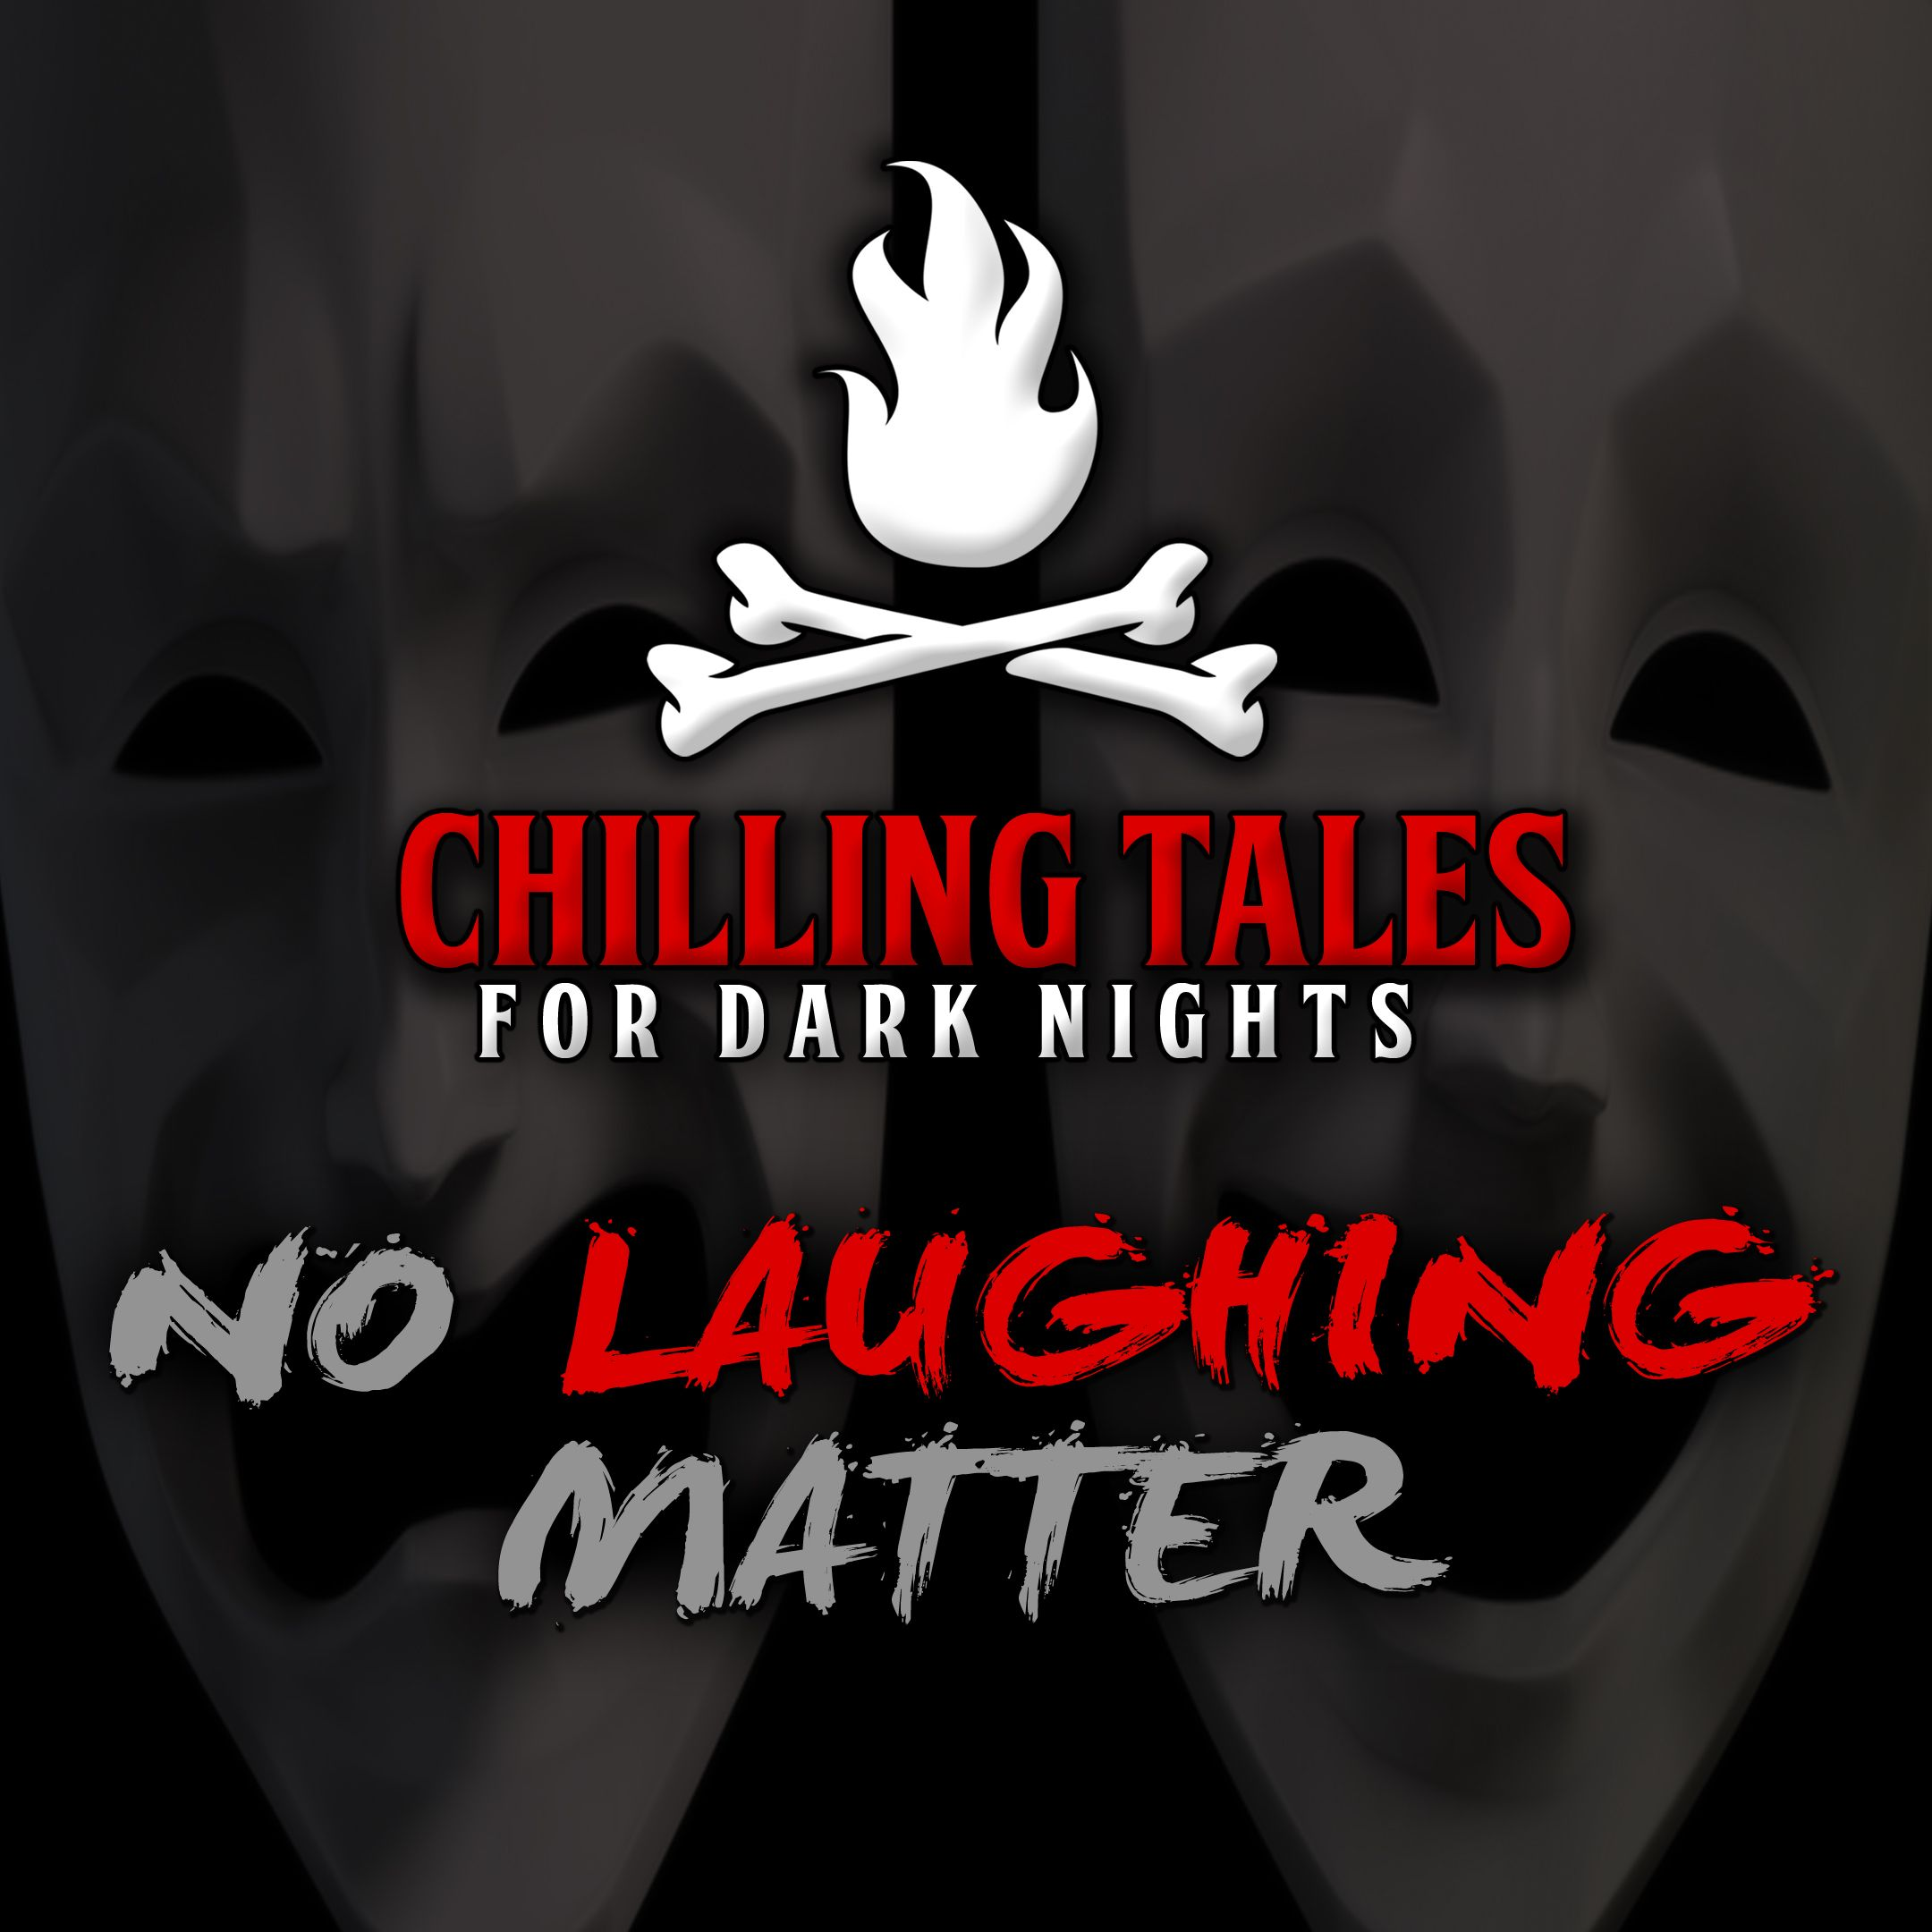 81: No Laughing Matter – Chilling Tales for Dark Nights